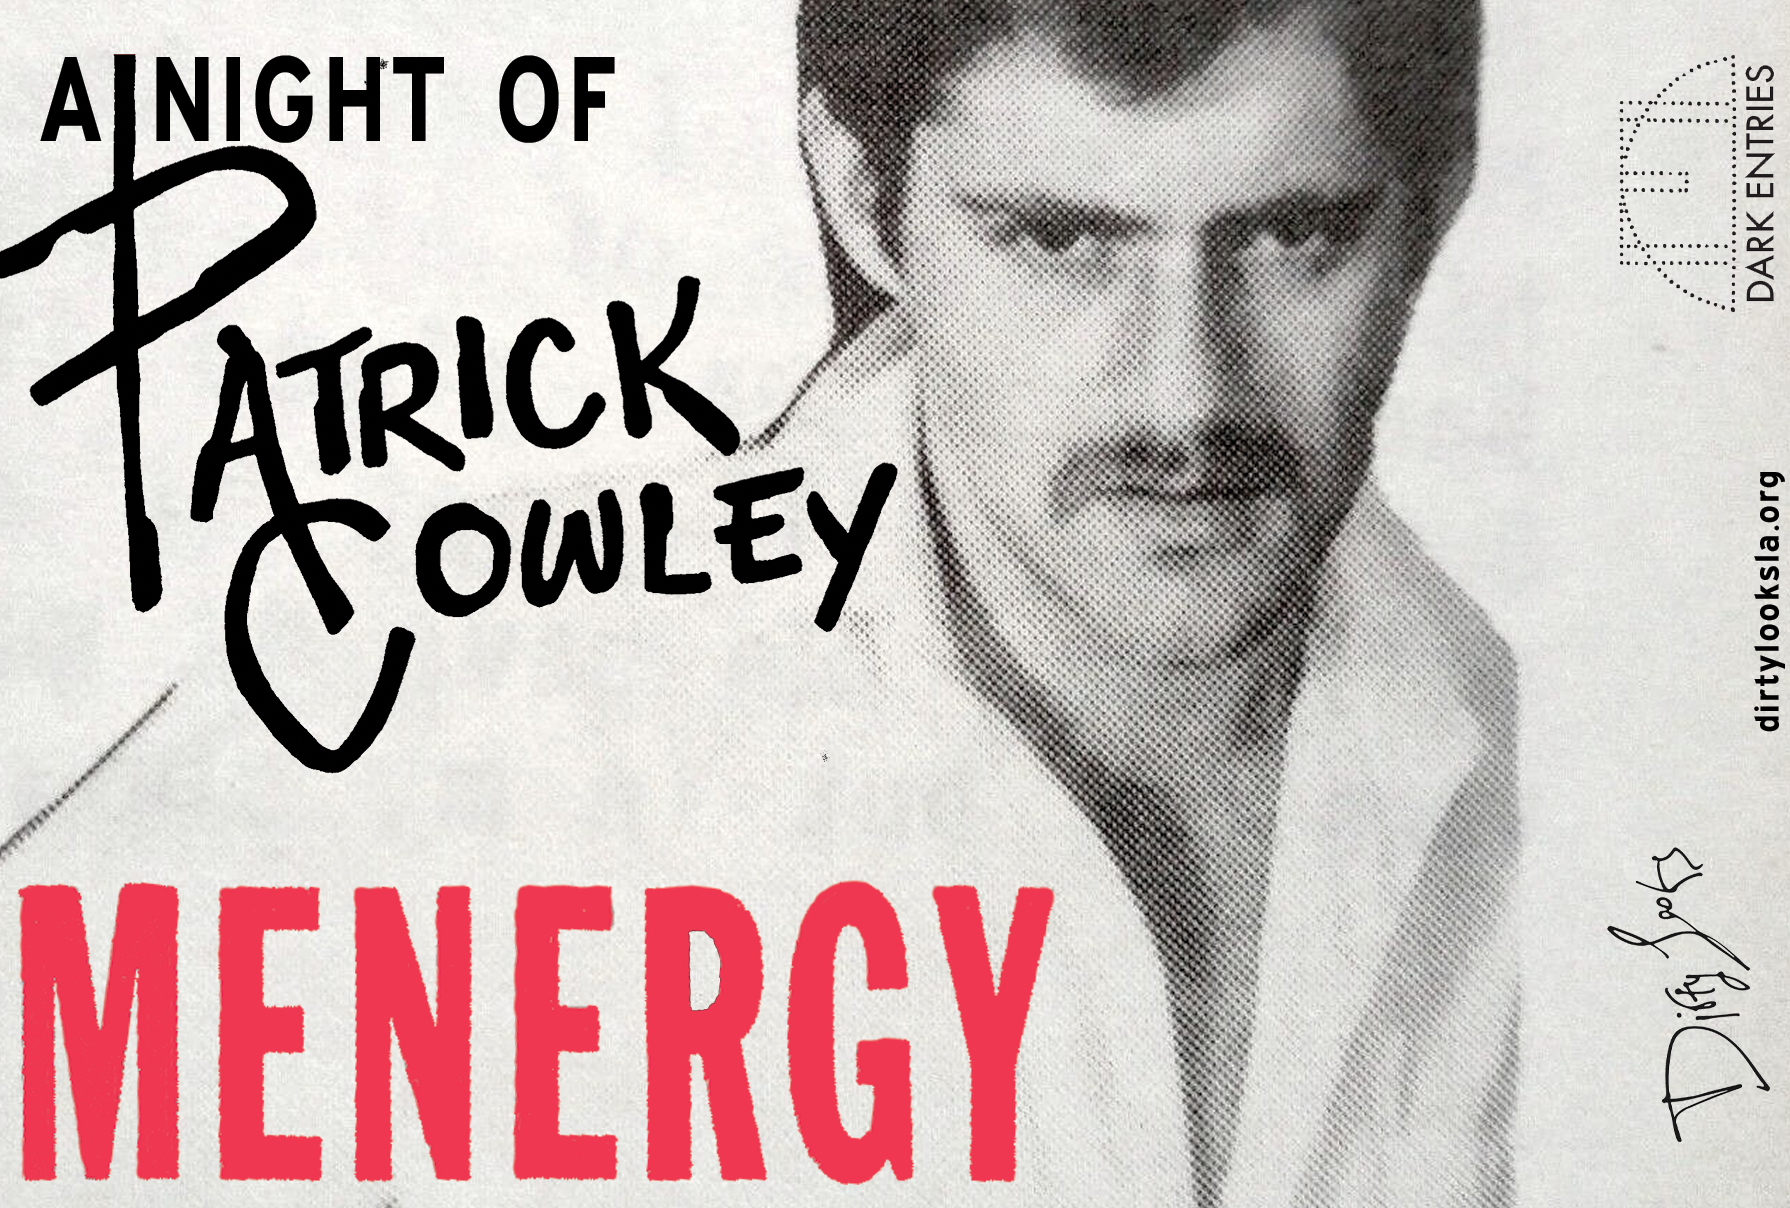 MENERGY: A Night of Patrick Cowley